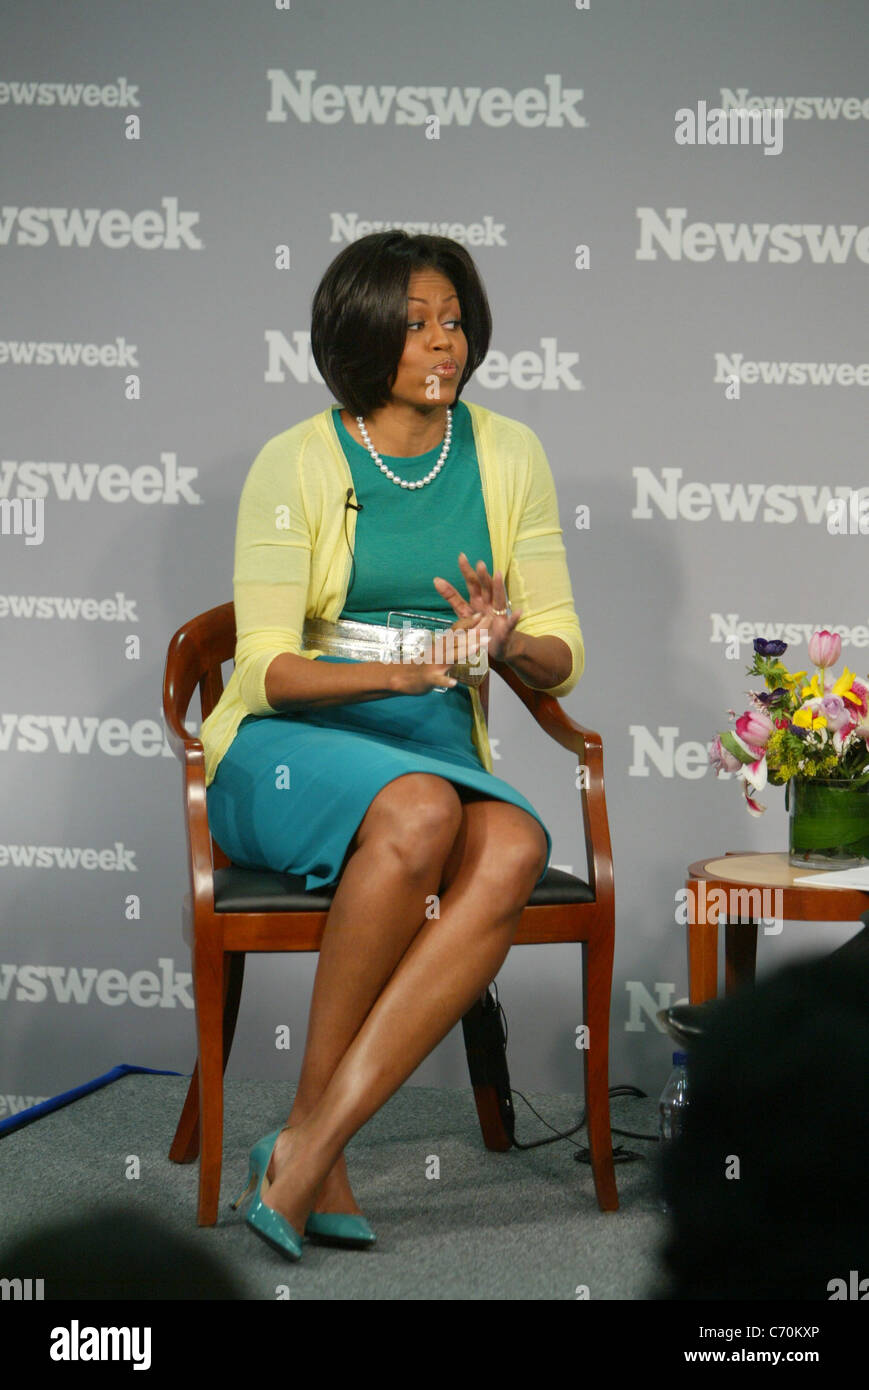 First Lady Michelle Obama Newsweek magazine's executive